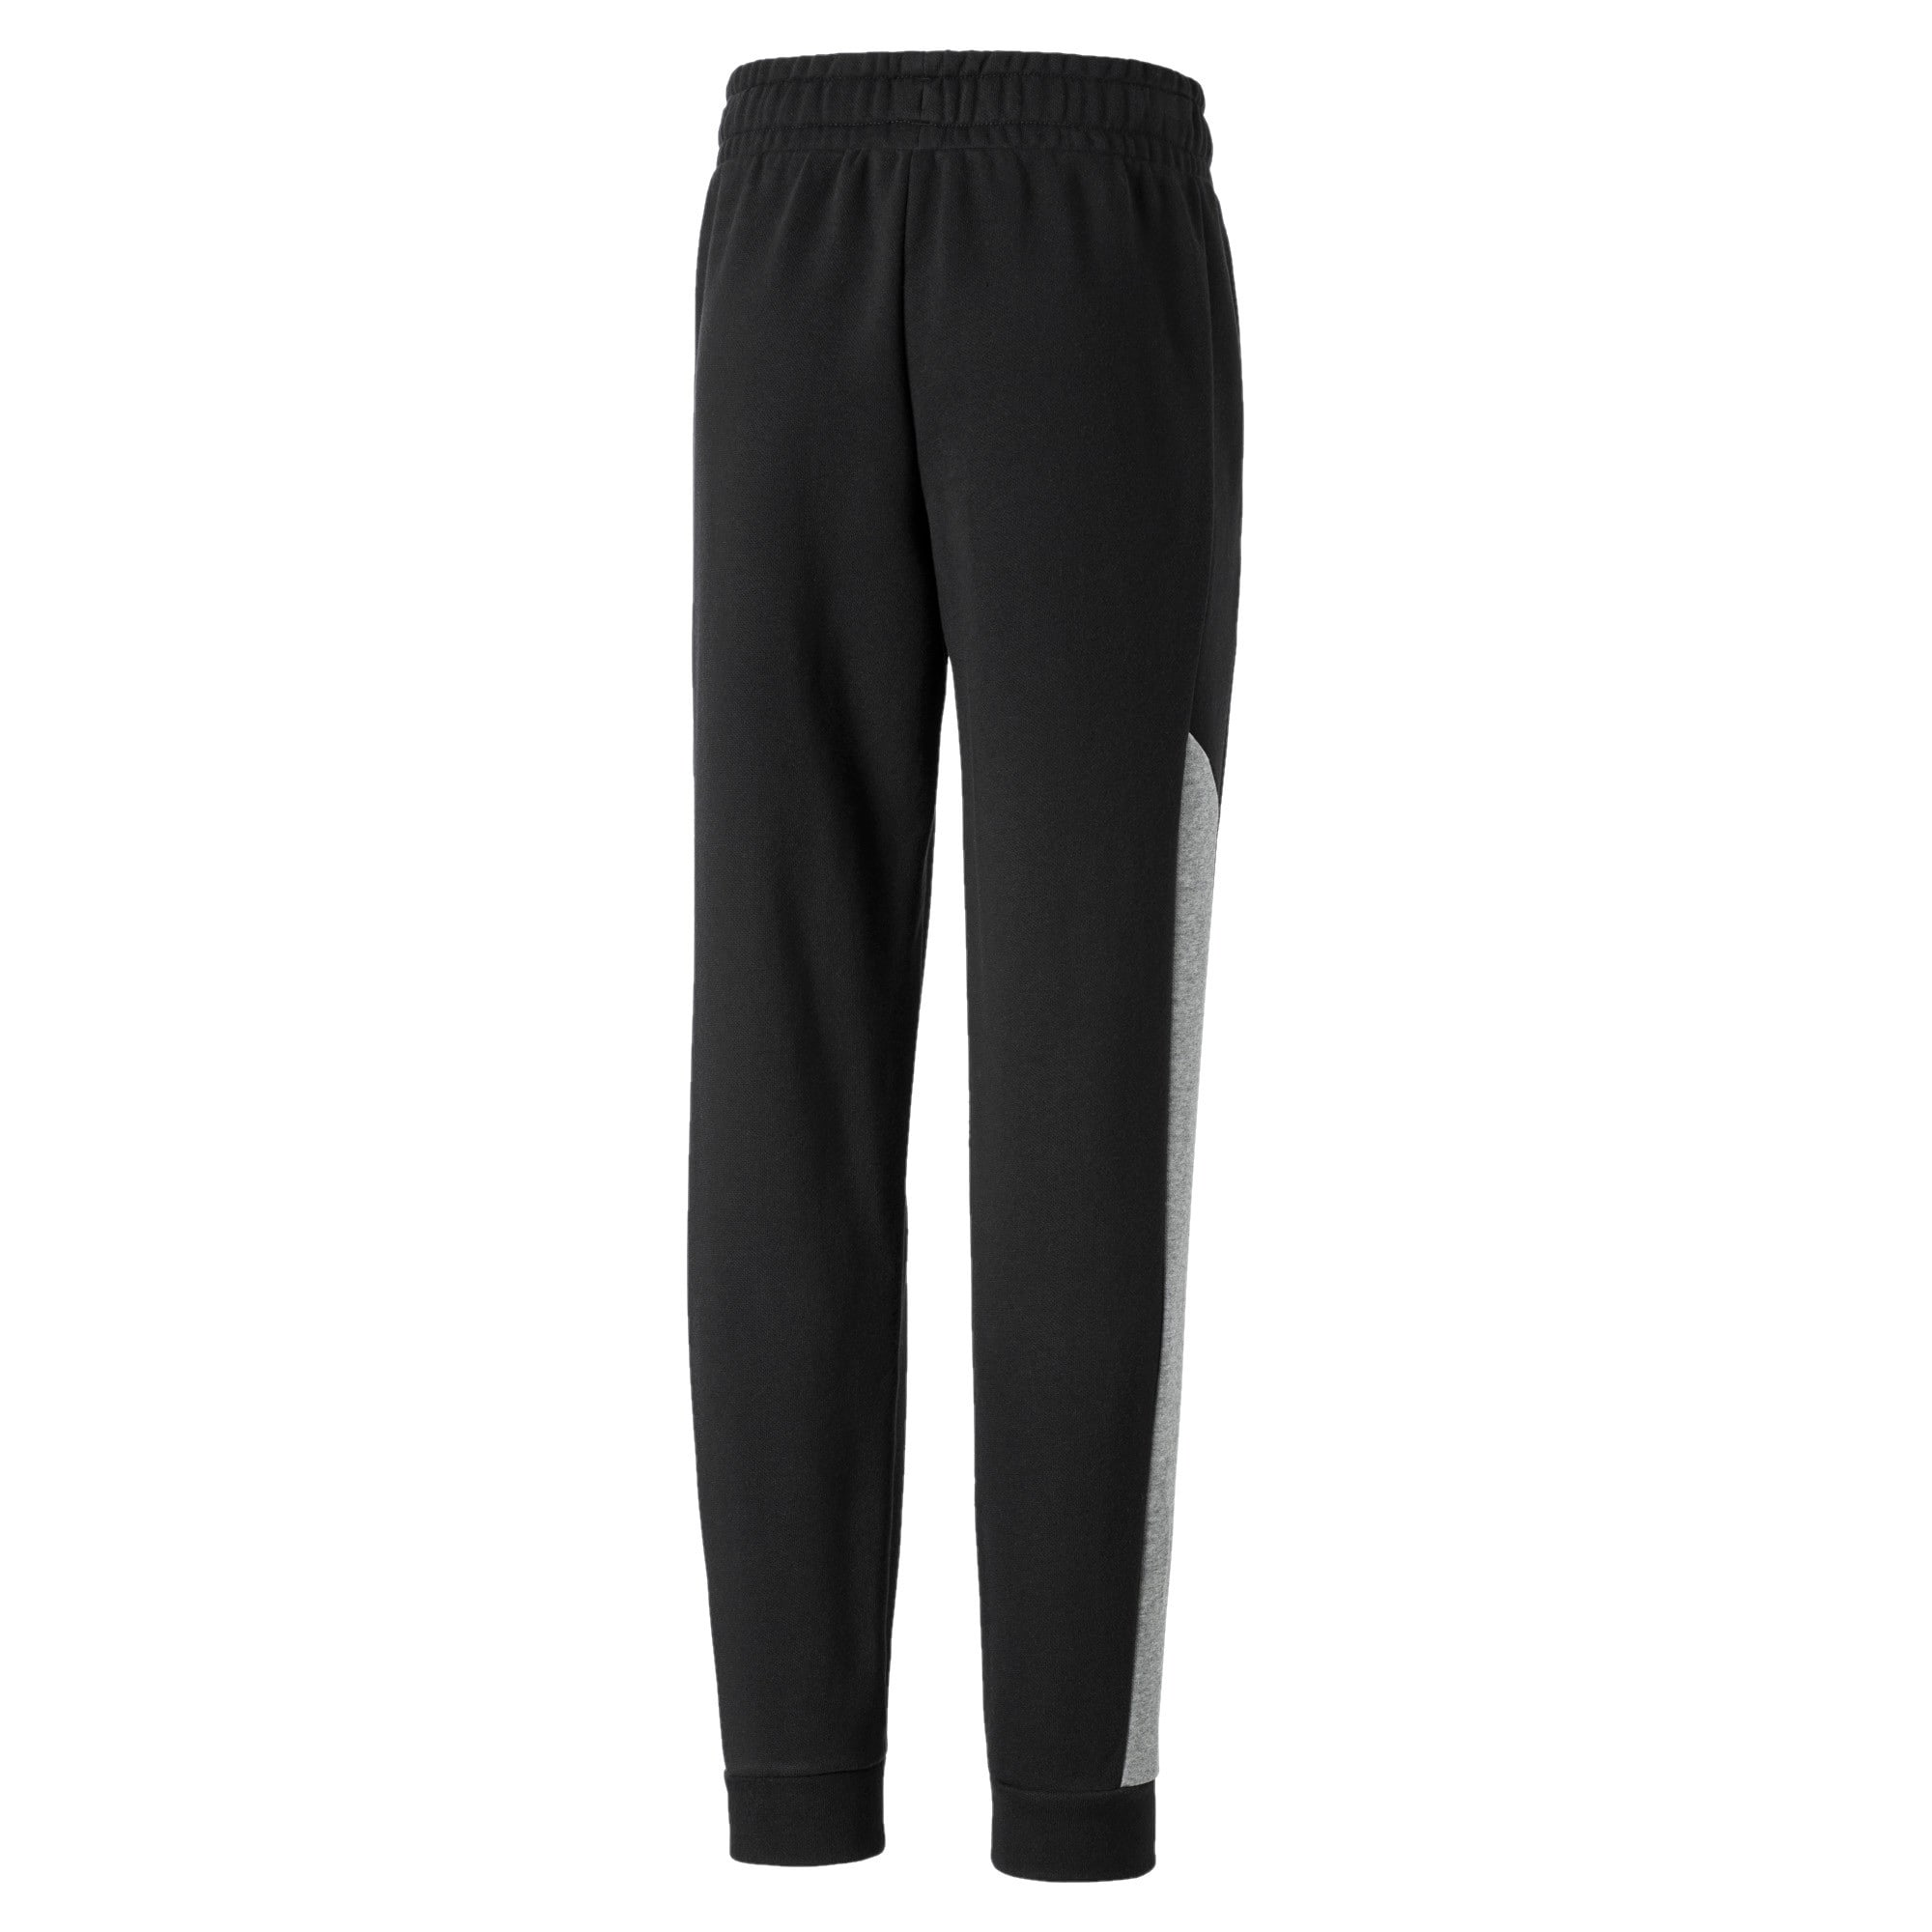 Thumbnail 2 of Alpha Knitted Boys' Sweatpants, Puma Black, medium